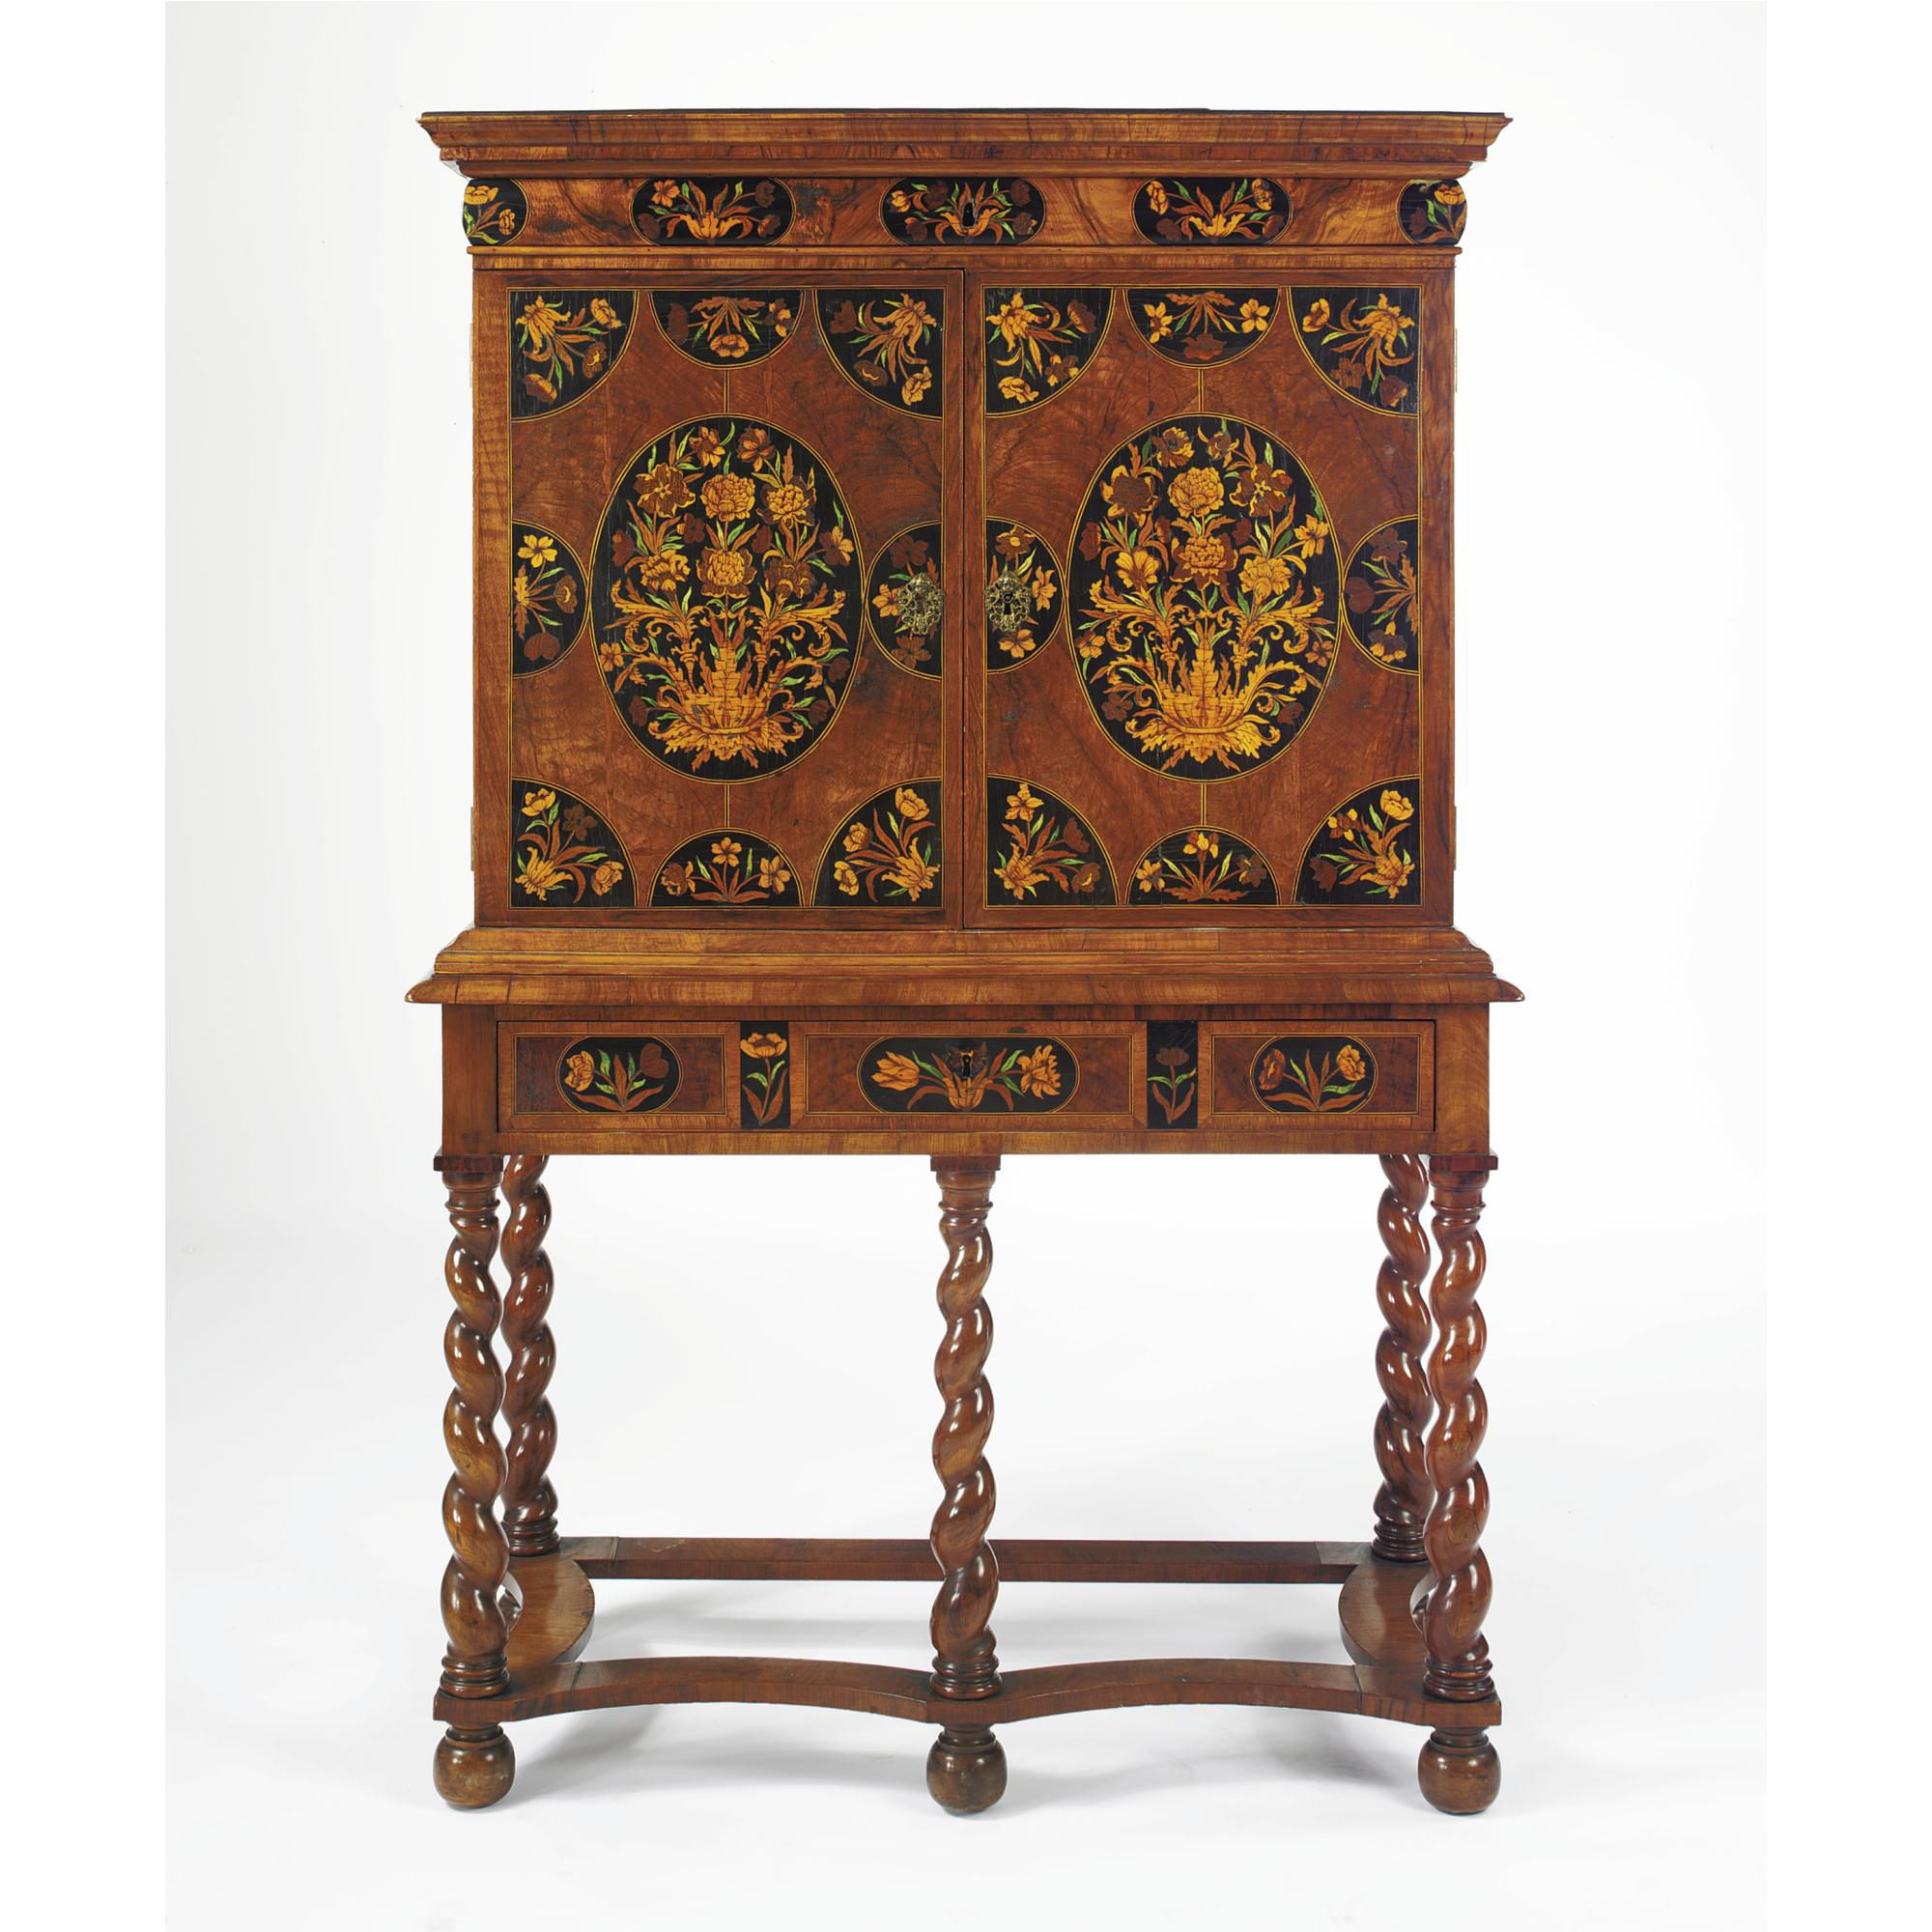 Antique European Kitchen Cabinets A Dutch Baroque Walnut And Floral Marquetry Cabinet On A